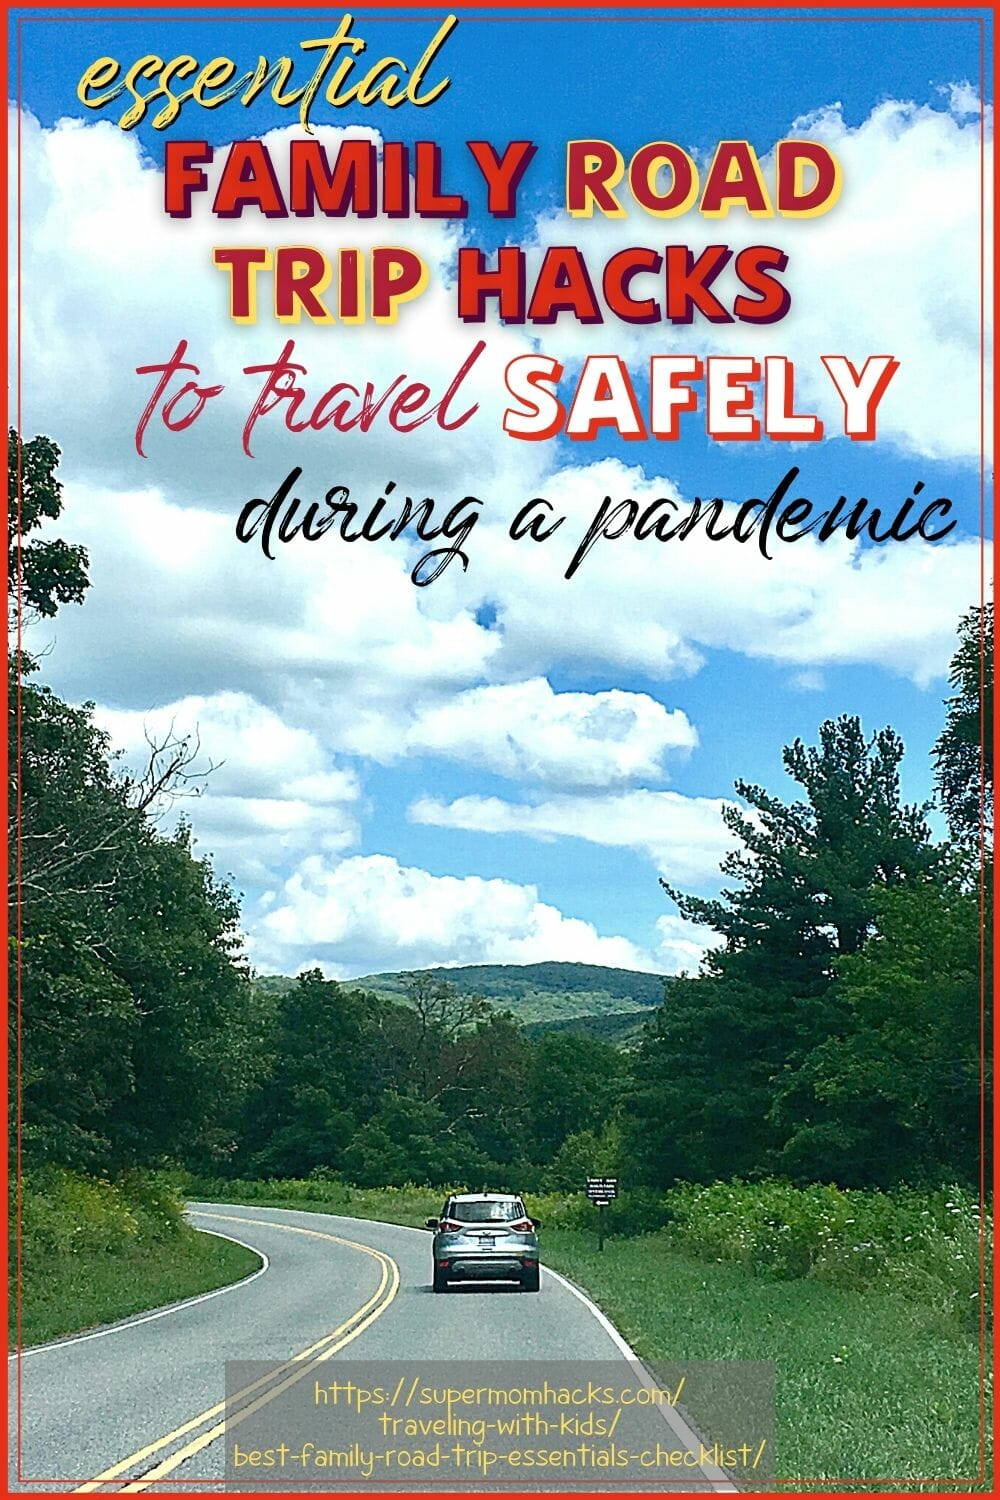 Planning a family road trip? These family road trip essentials and road trip hacks will ensure a smooth trip in these uncertain times.